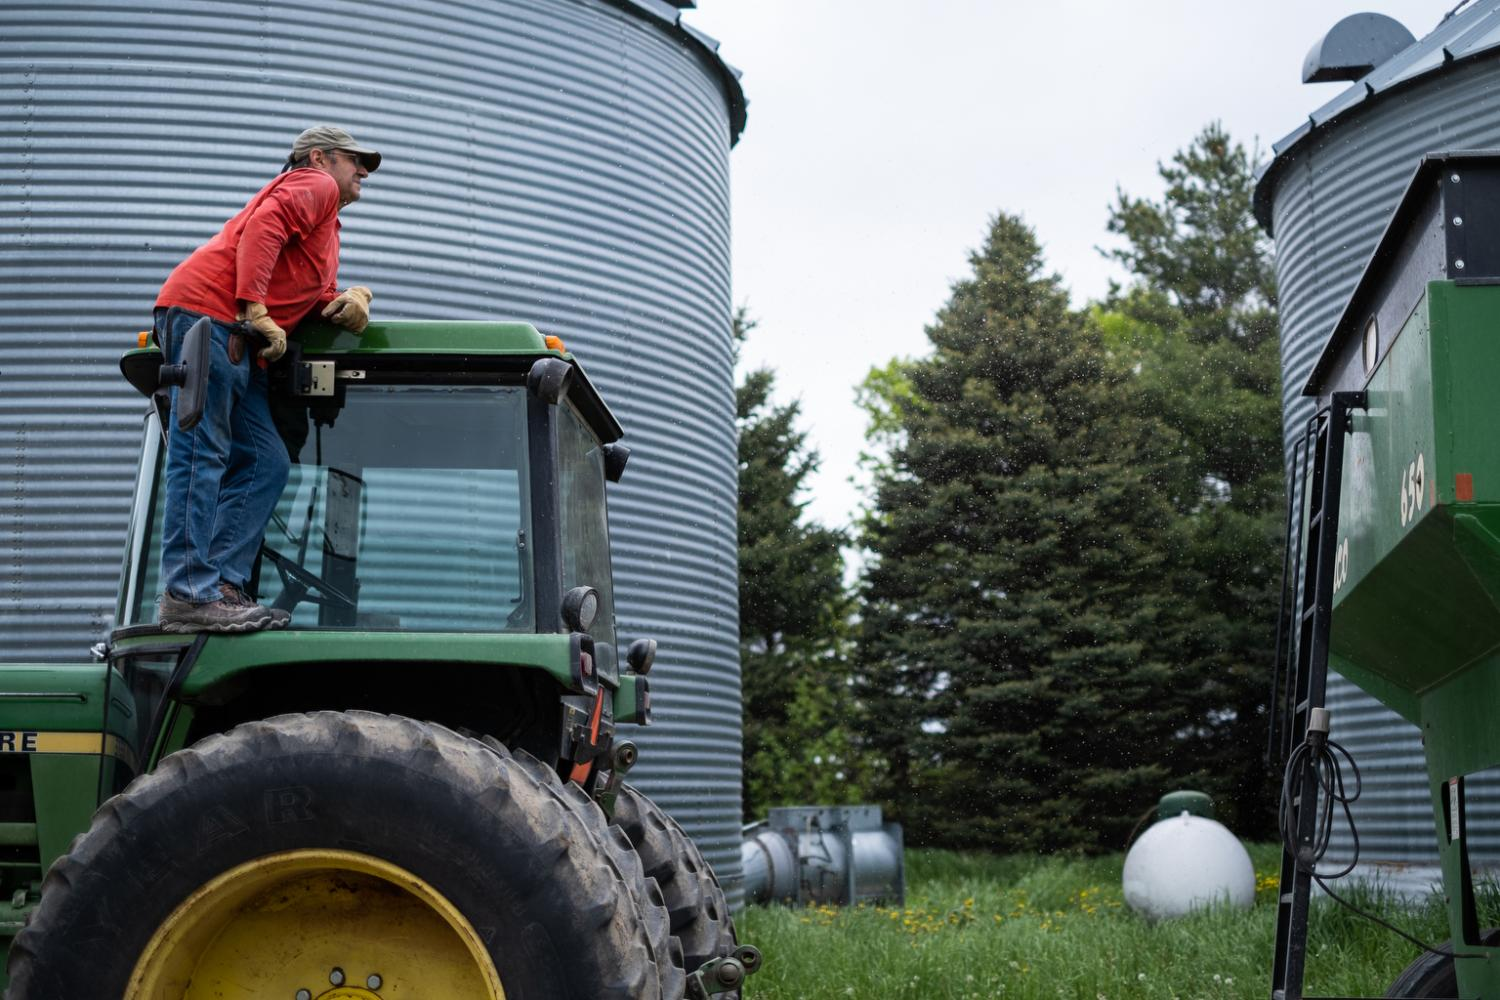 My dad watching to see how full the wagon is; he will then take the wagon of corn to town to sell.